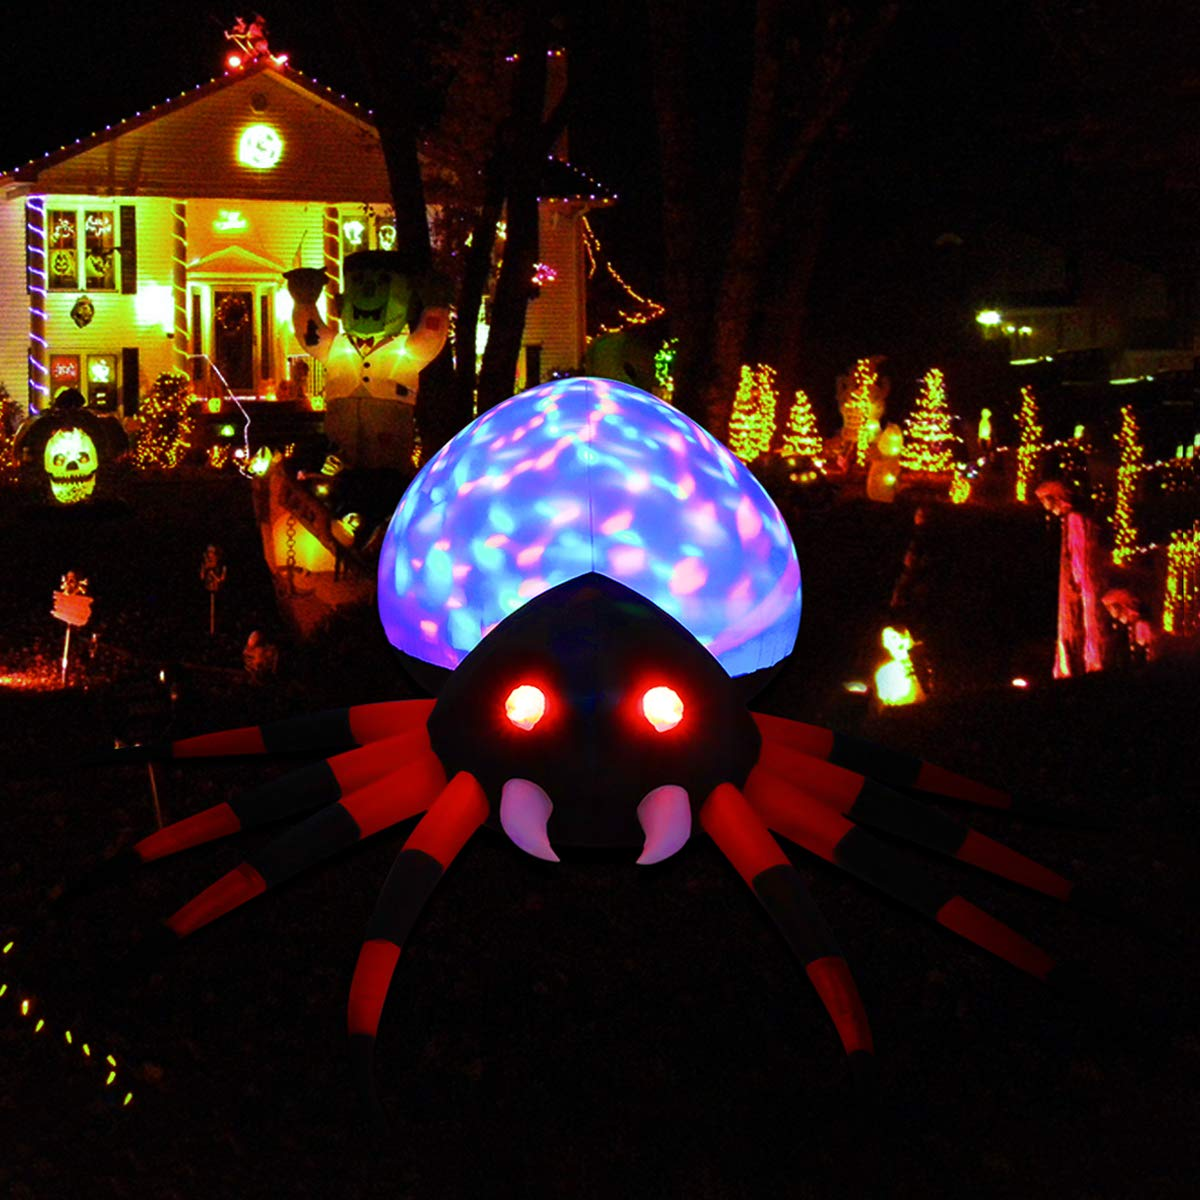 YUNLIGHTS Halloween Decorations 8ft Inflatable Spider Decor Built-in LED Lights with Anchoring Stakes for Outdoor, Yard, Garden,Lawn,Party by YUNLIGHTS